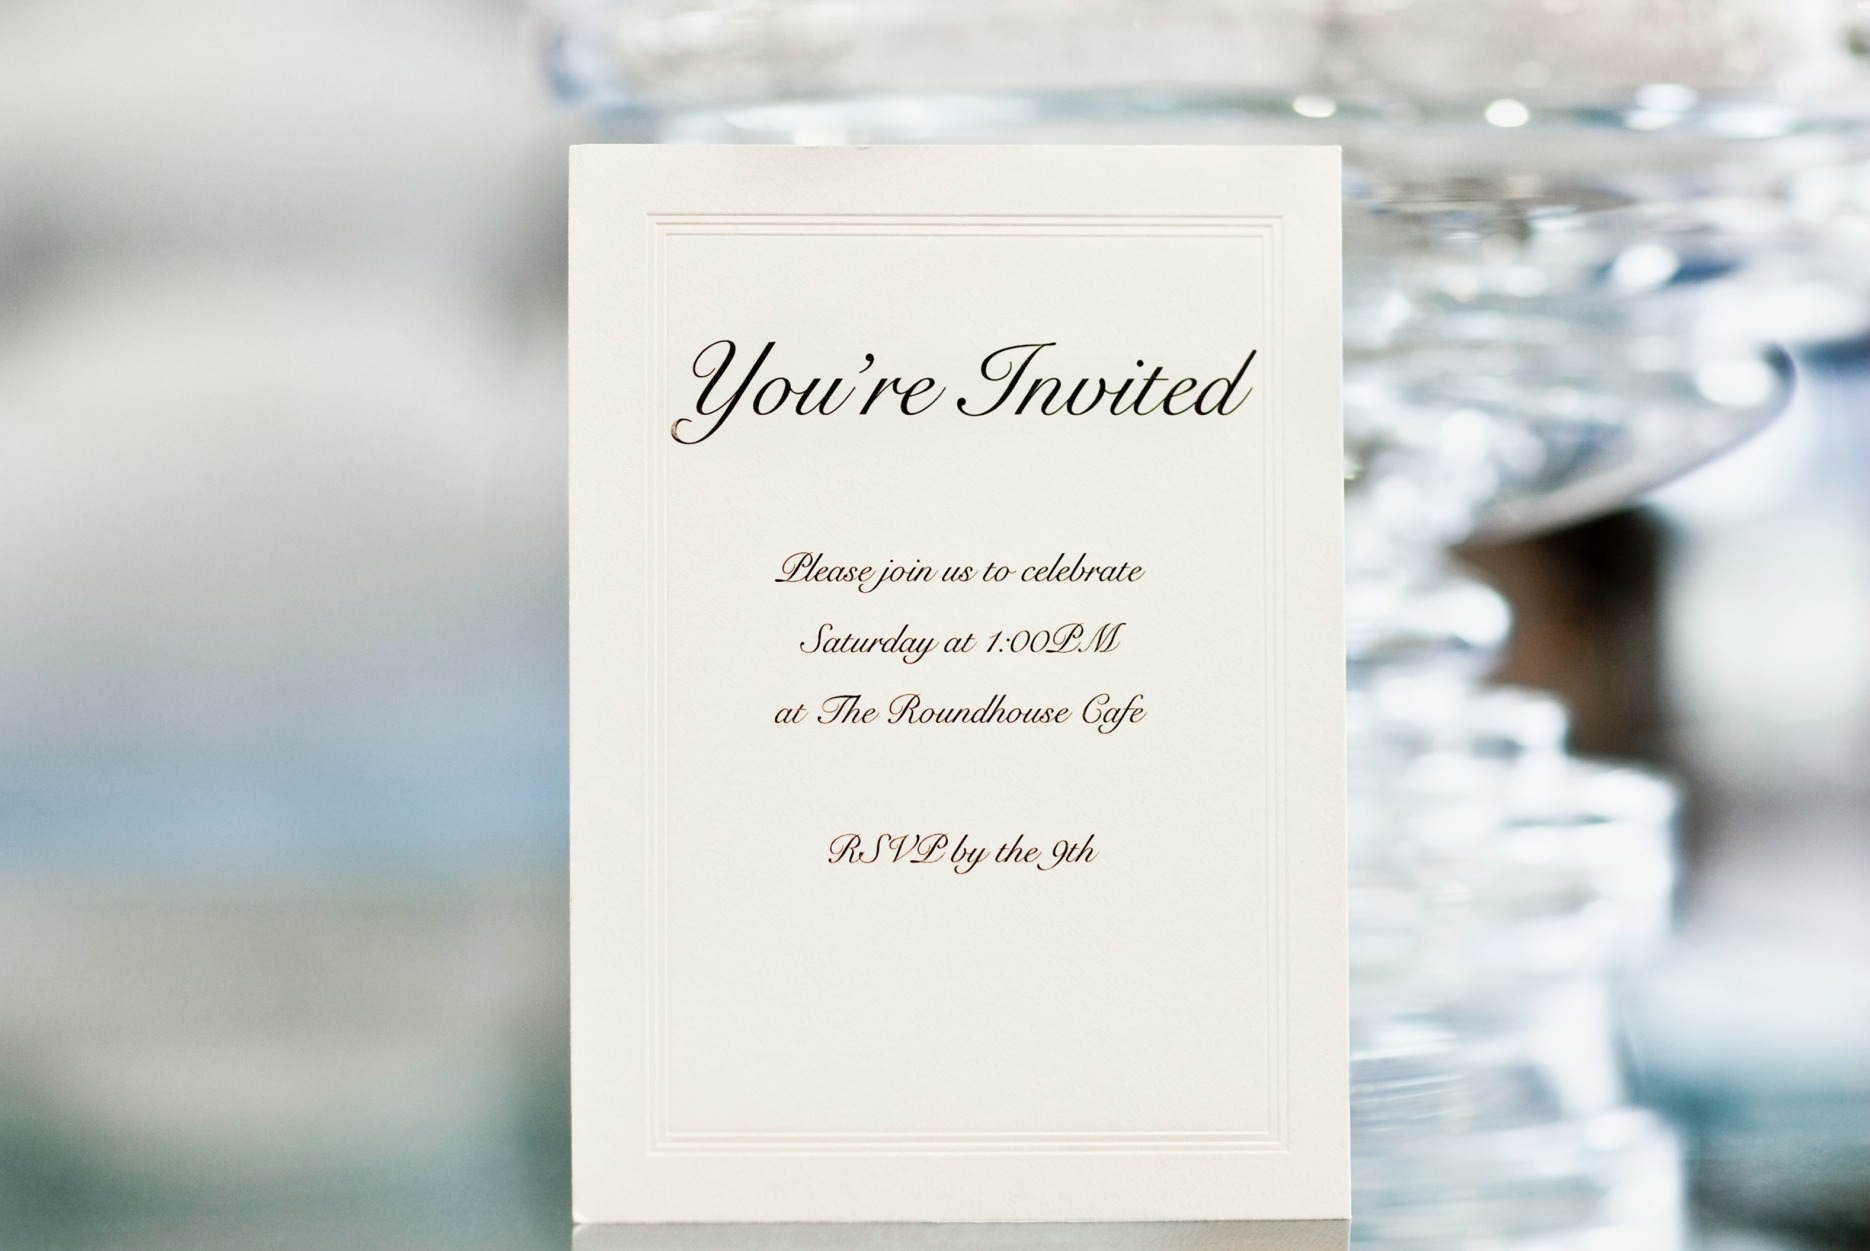 Wedding Card Invitation Ideas: Ideas For Wedding Invitation Wording